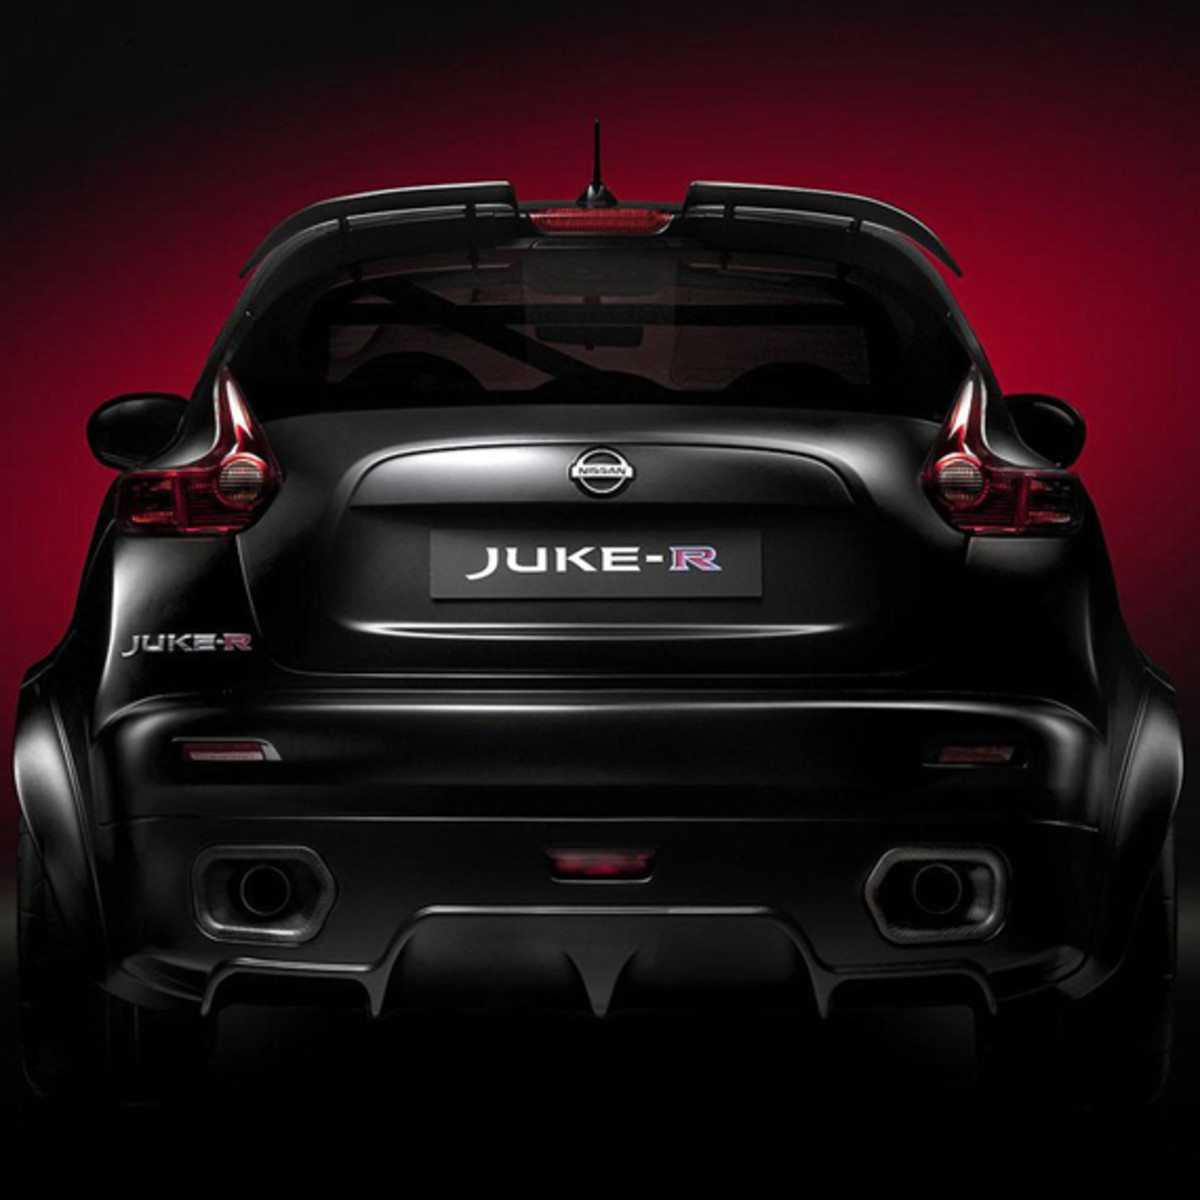 nissan-juke-r-officially-unveiled-10